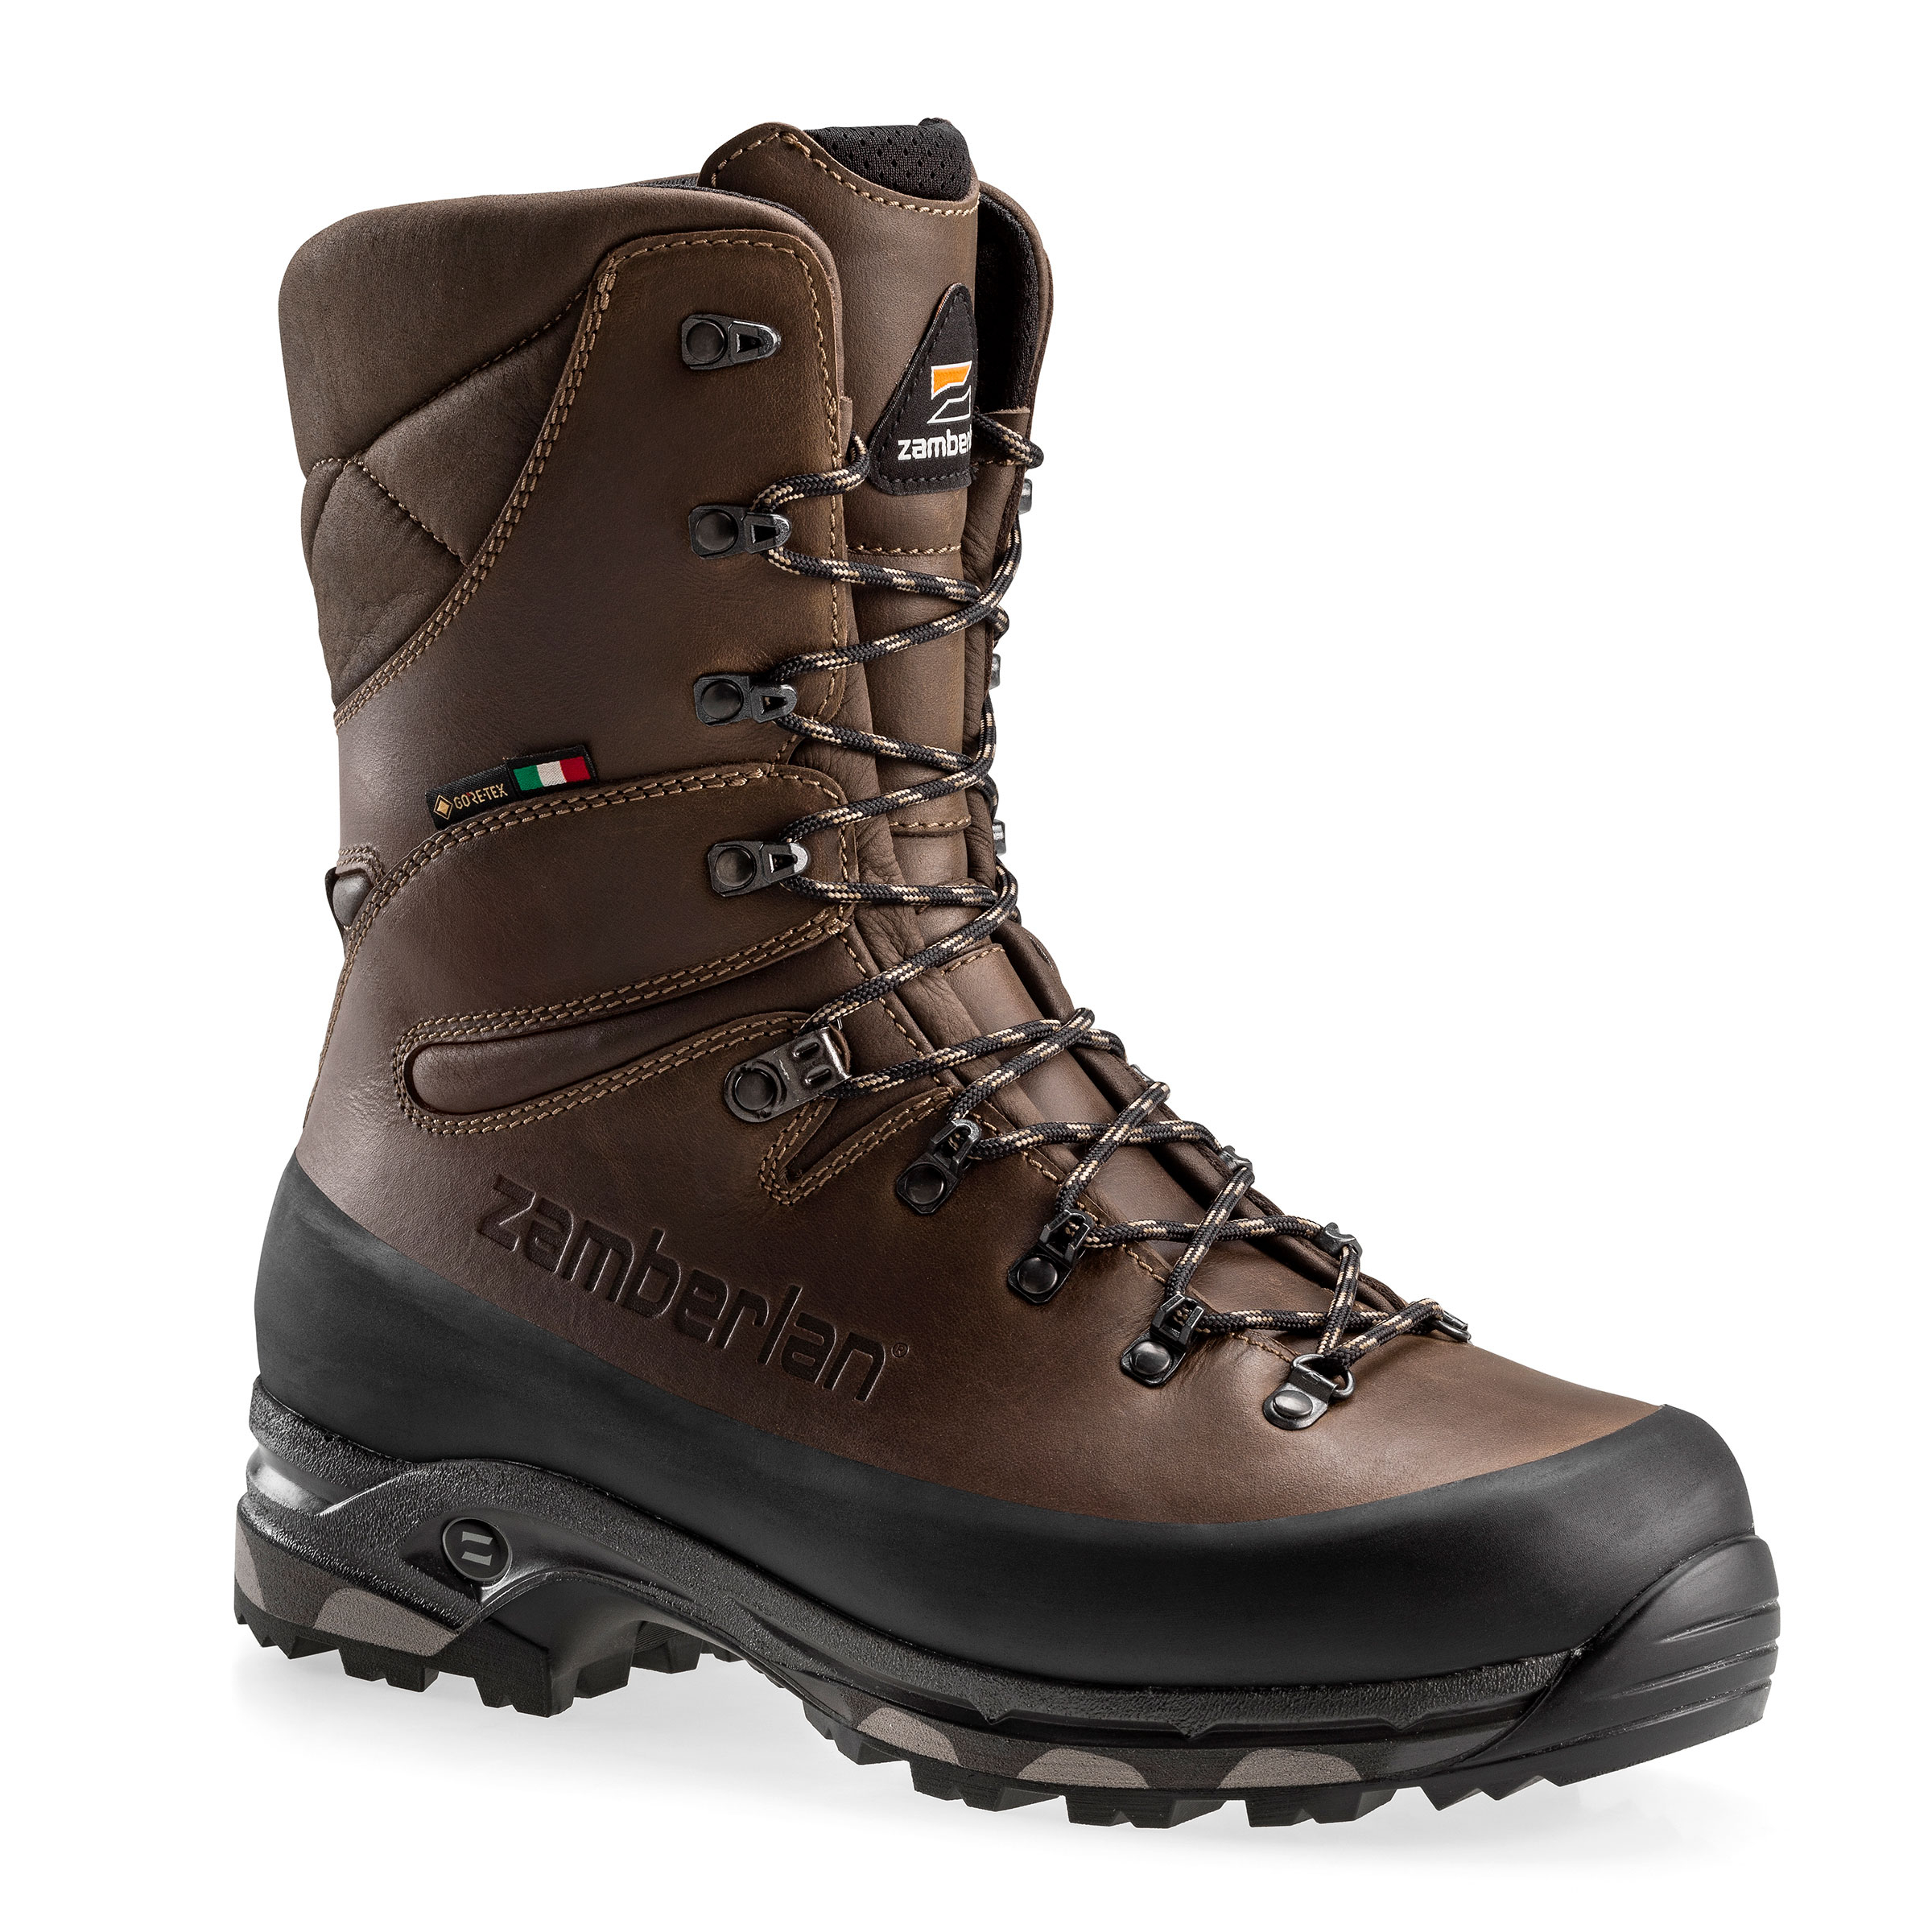 1005 HUNTER PRO EVO GTX® RR WL Insulated   -   Men's Insulated Hunting Boots   -   Waxed Chestnut